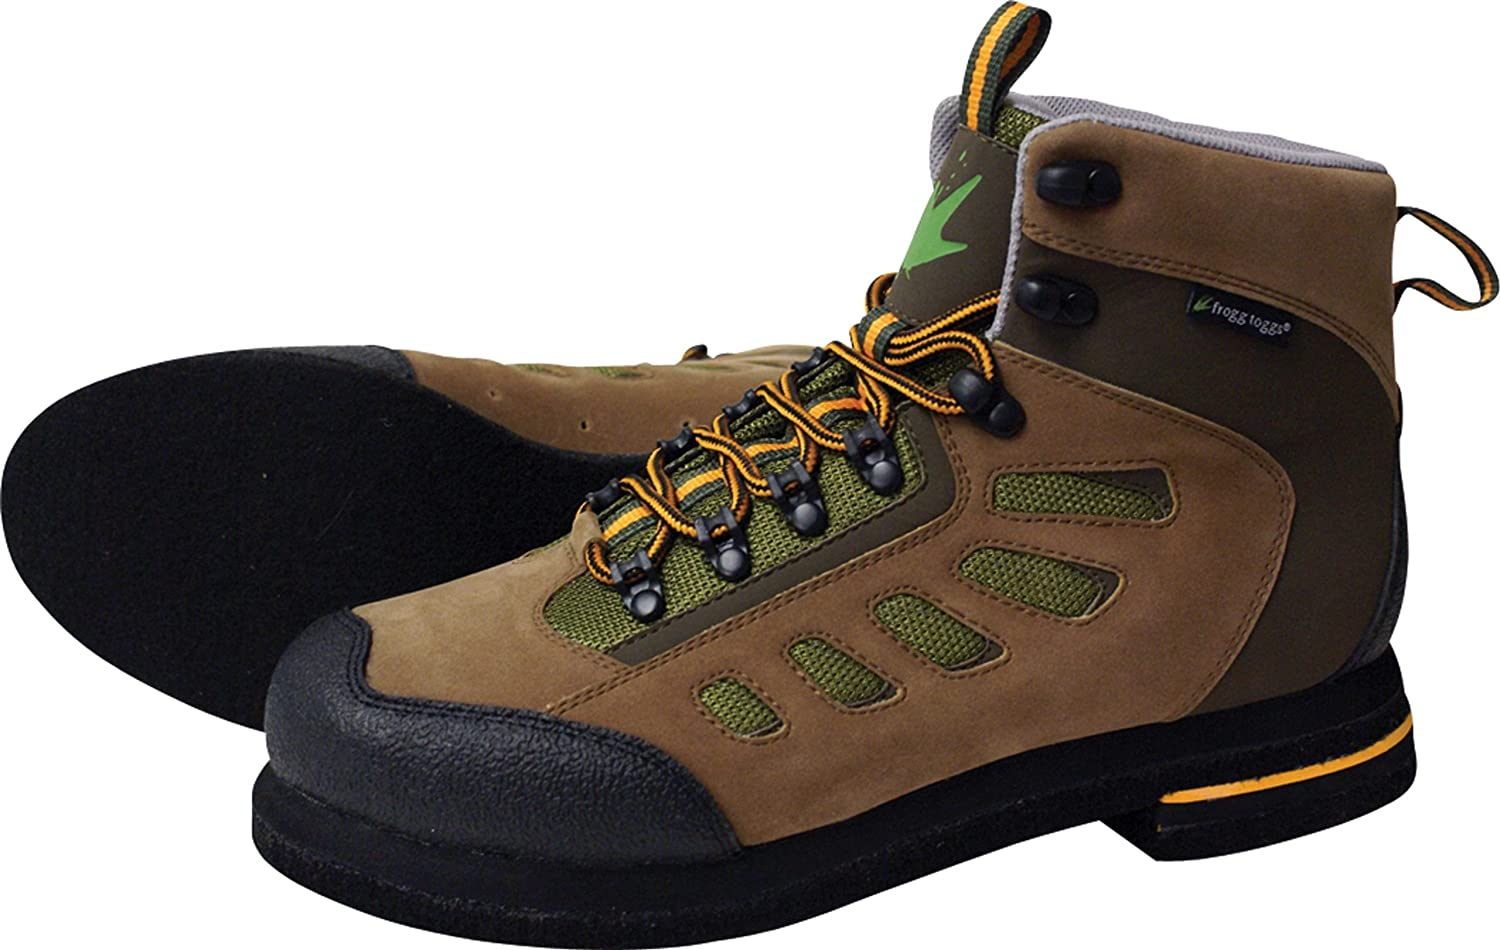 Frogg Toggs Anura Felt Wading Boot Brown-Olive